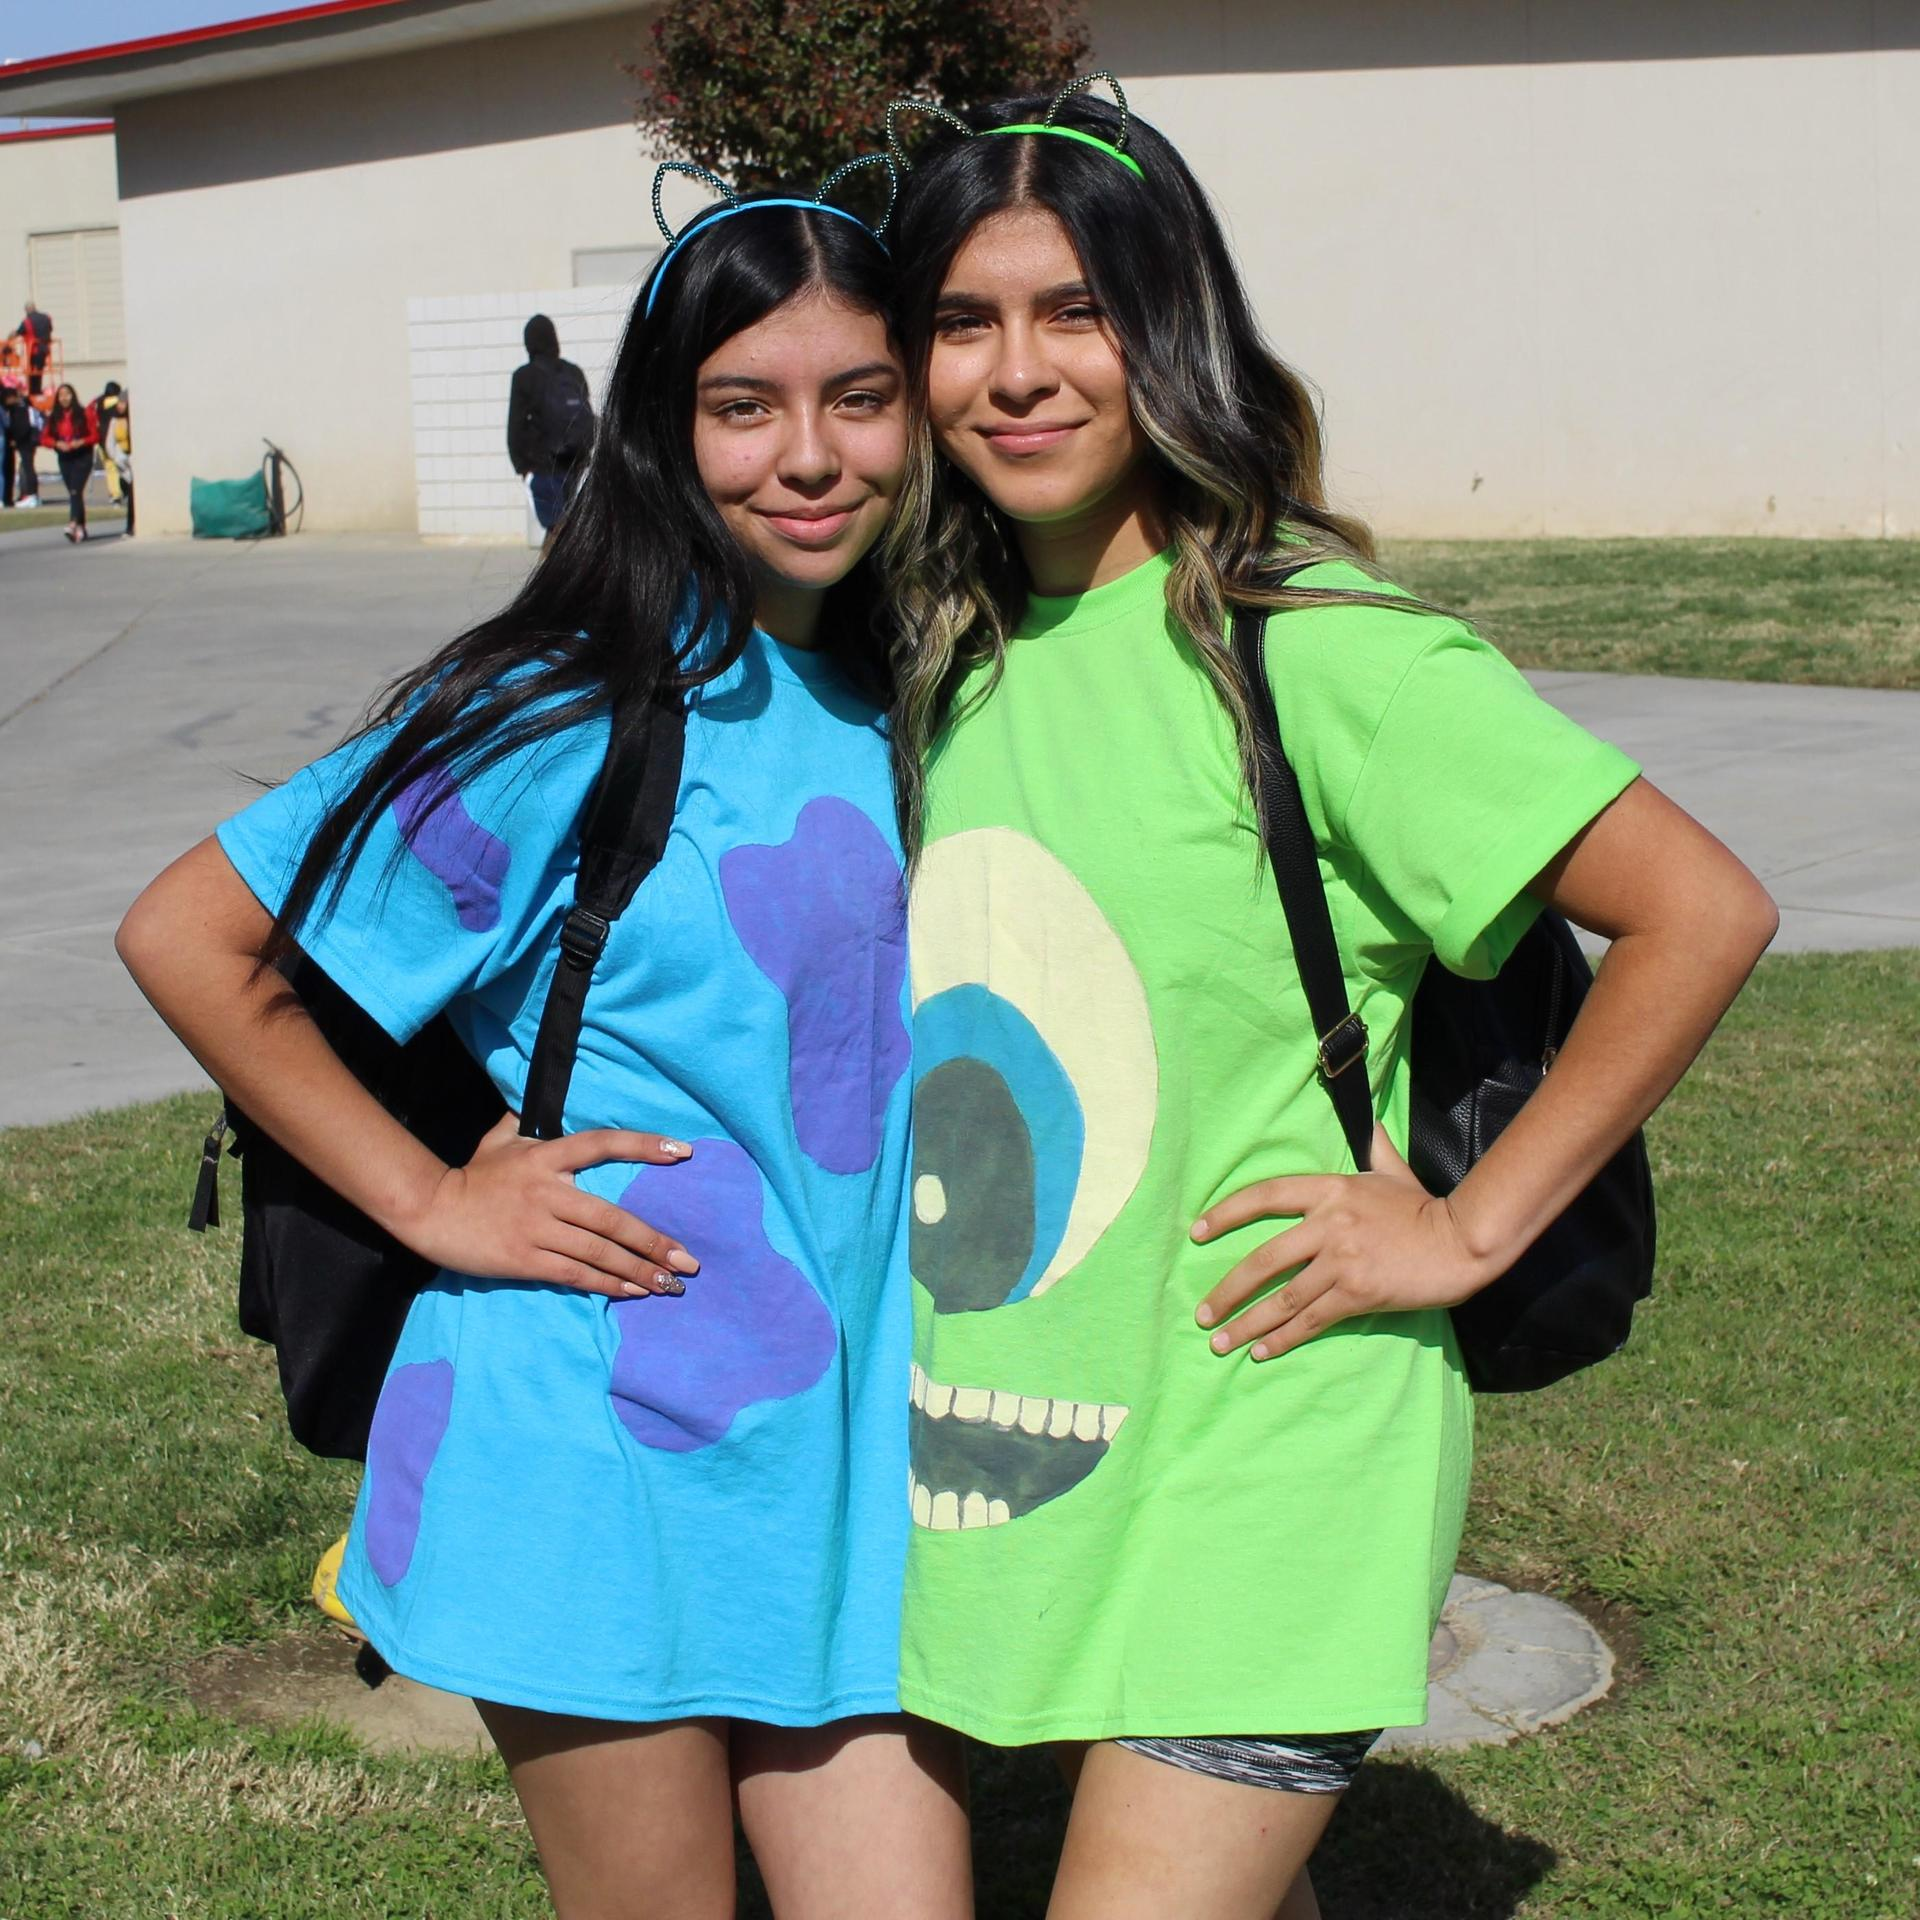 Fatima Gomez as Sullivan and Evelyn Lopez as Mike Wazowski